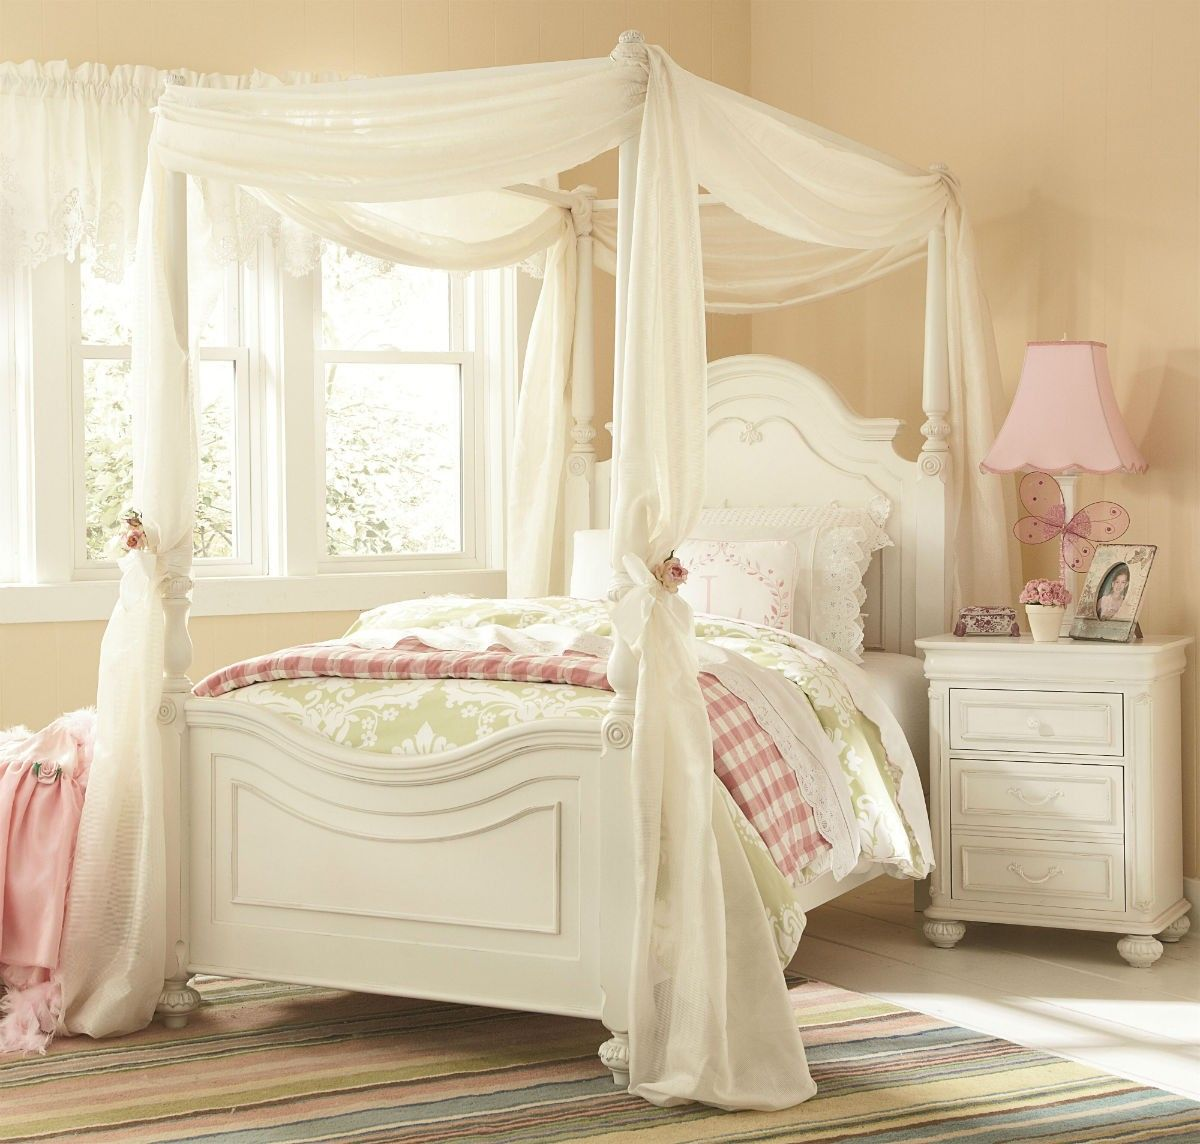 Little Girl Canopy Bed Ideas 19 Fabulous Canopy Bed Designs For Your Little Princess